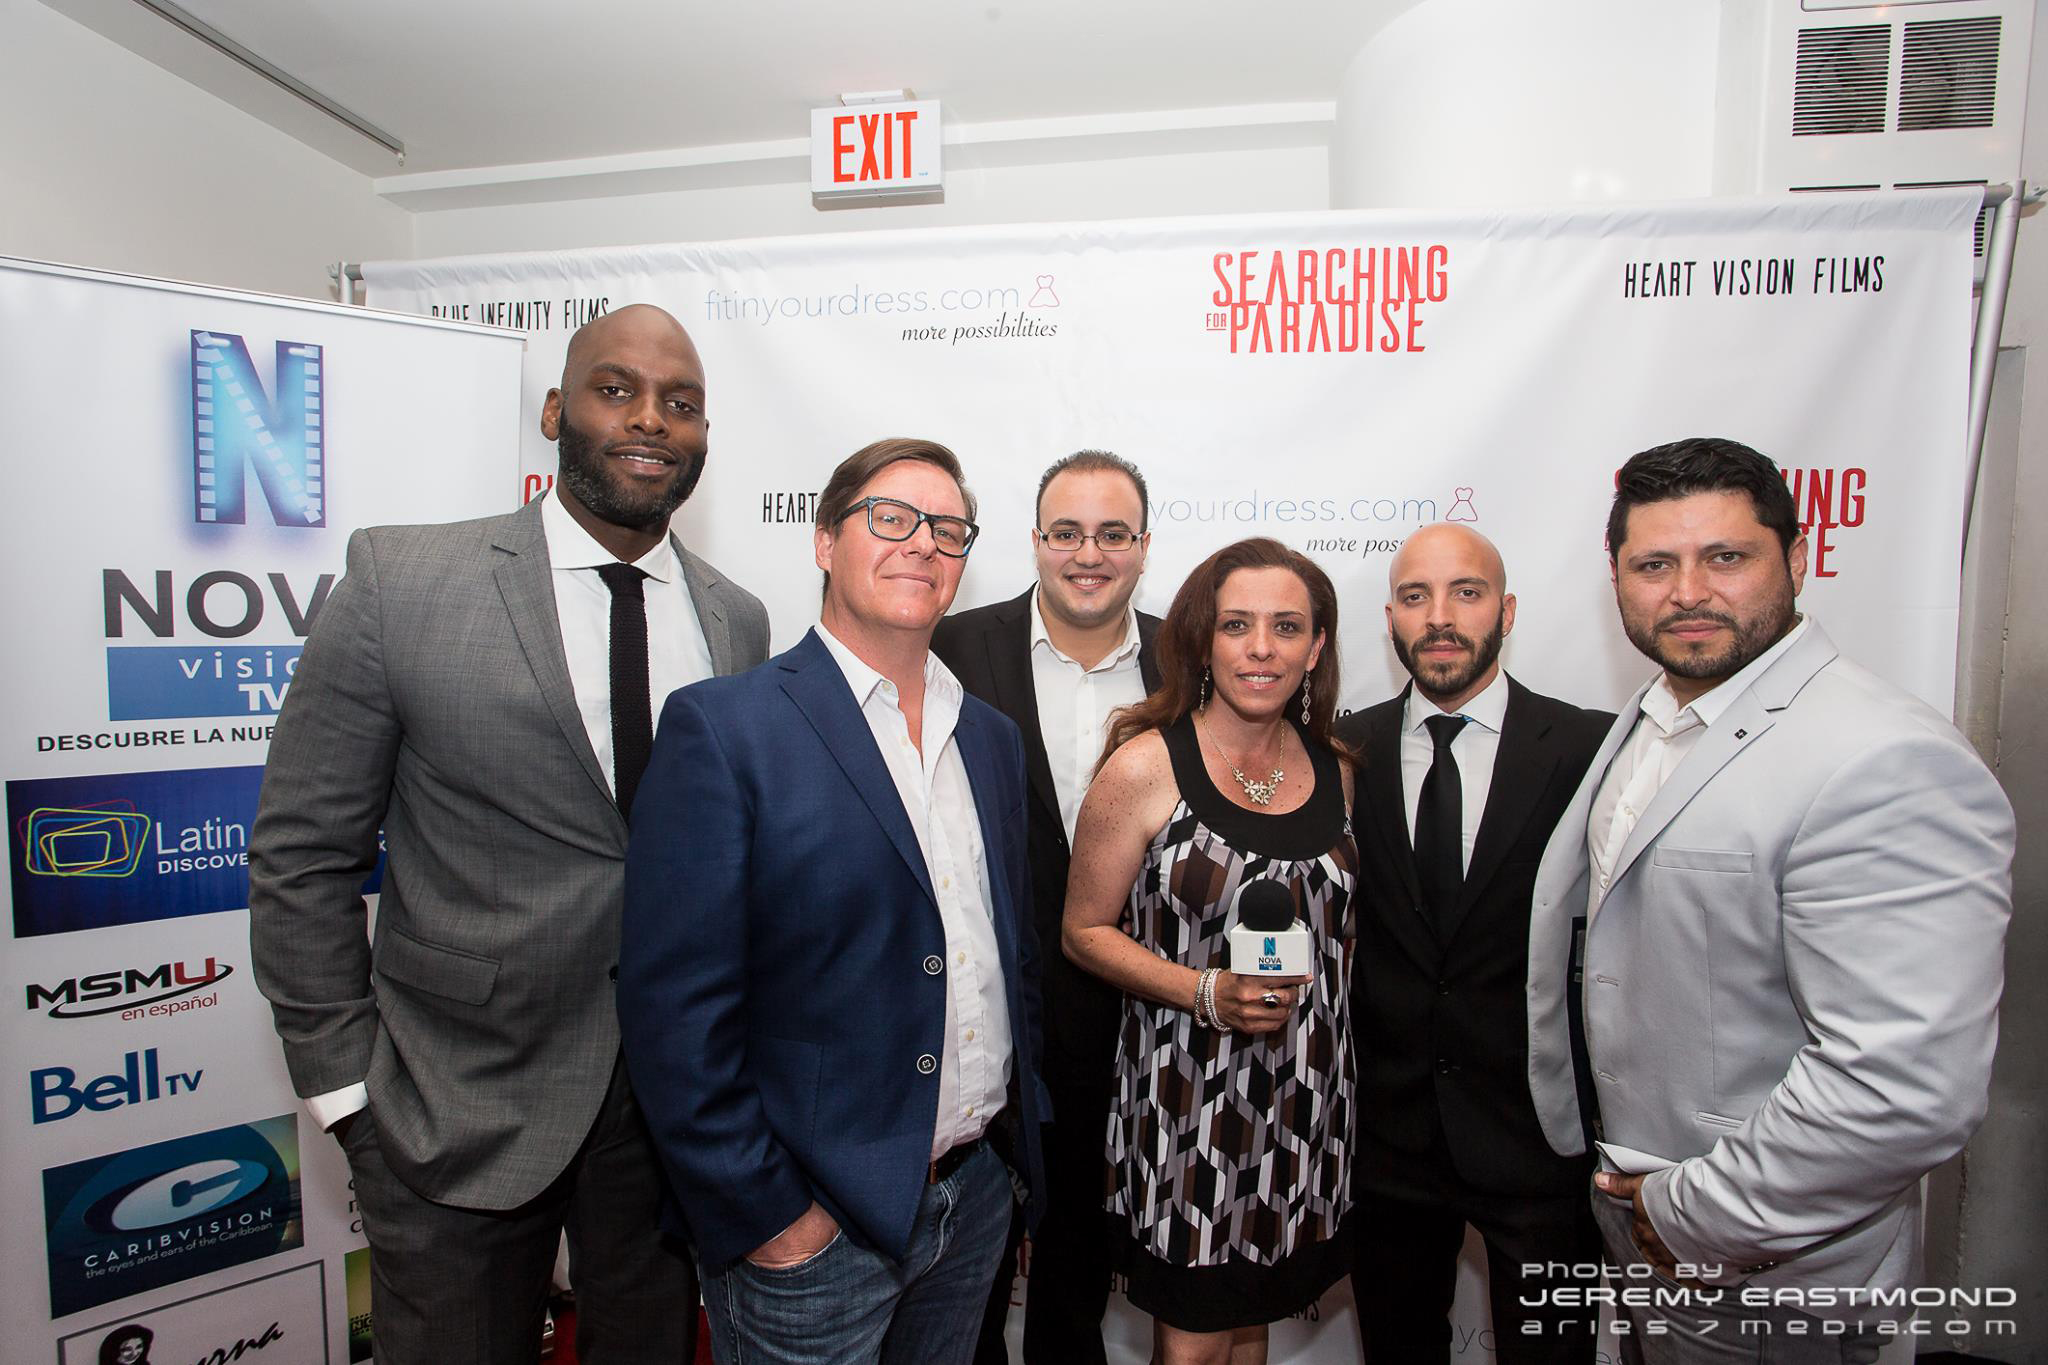 Red carpet at the Searching For Paradise press premiere in Toronto